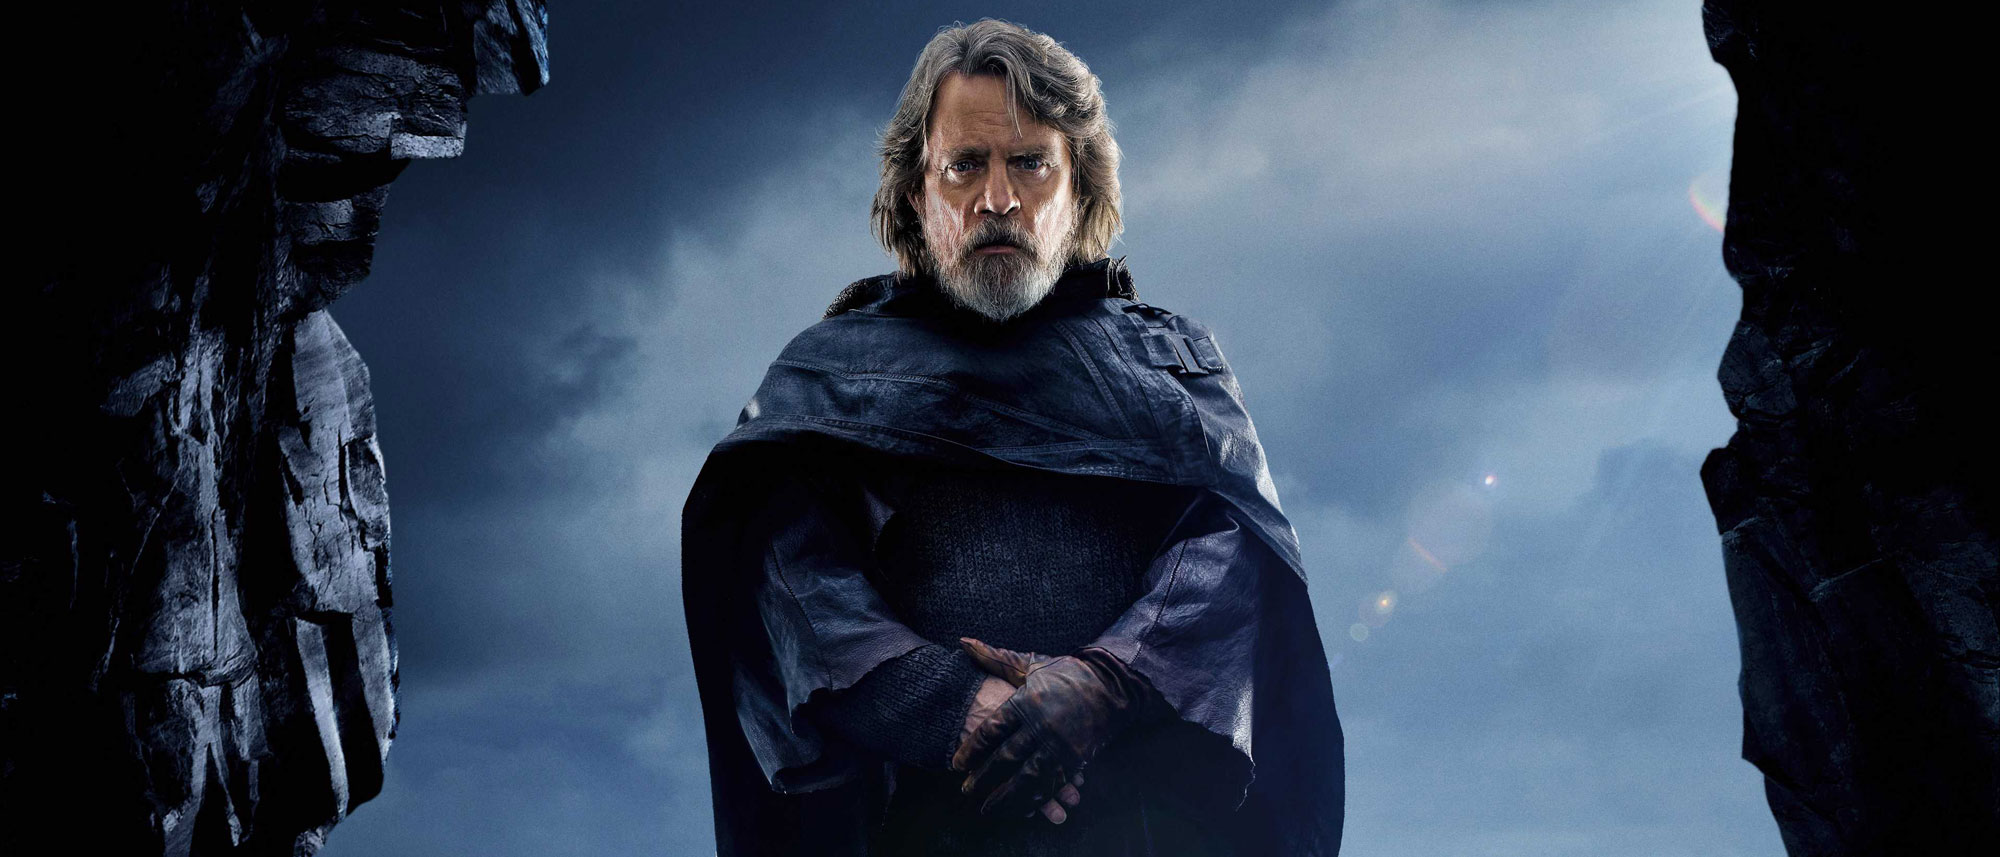 Star Wars The Last Jedi Luke Skywalker Uhd 4k Wallpaper Small Screen